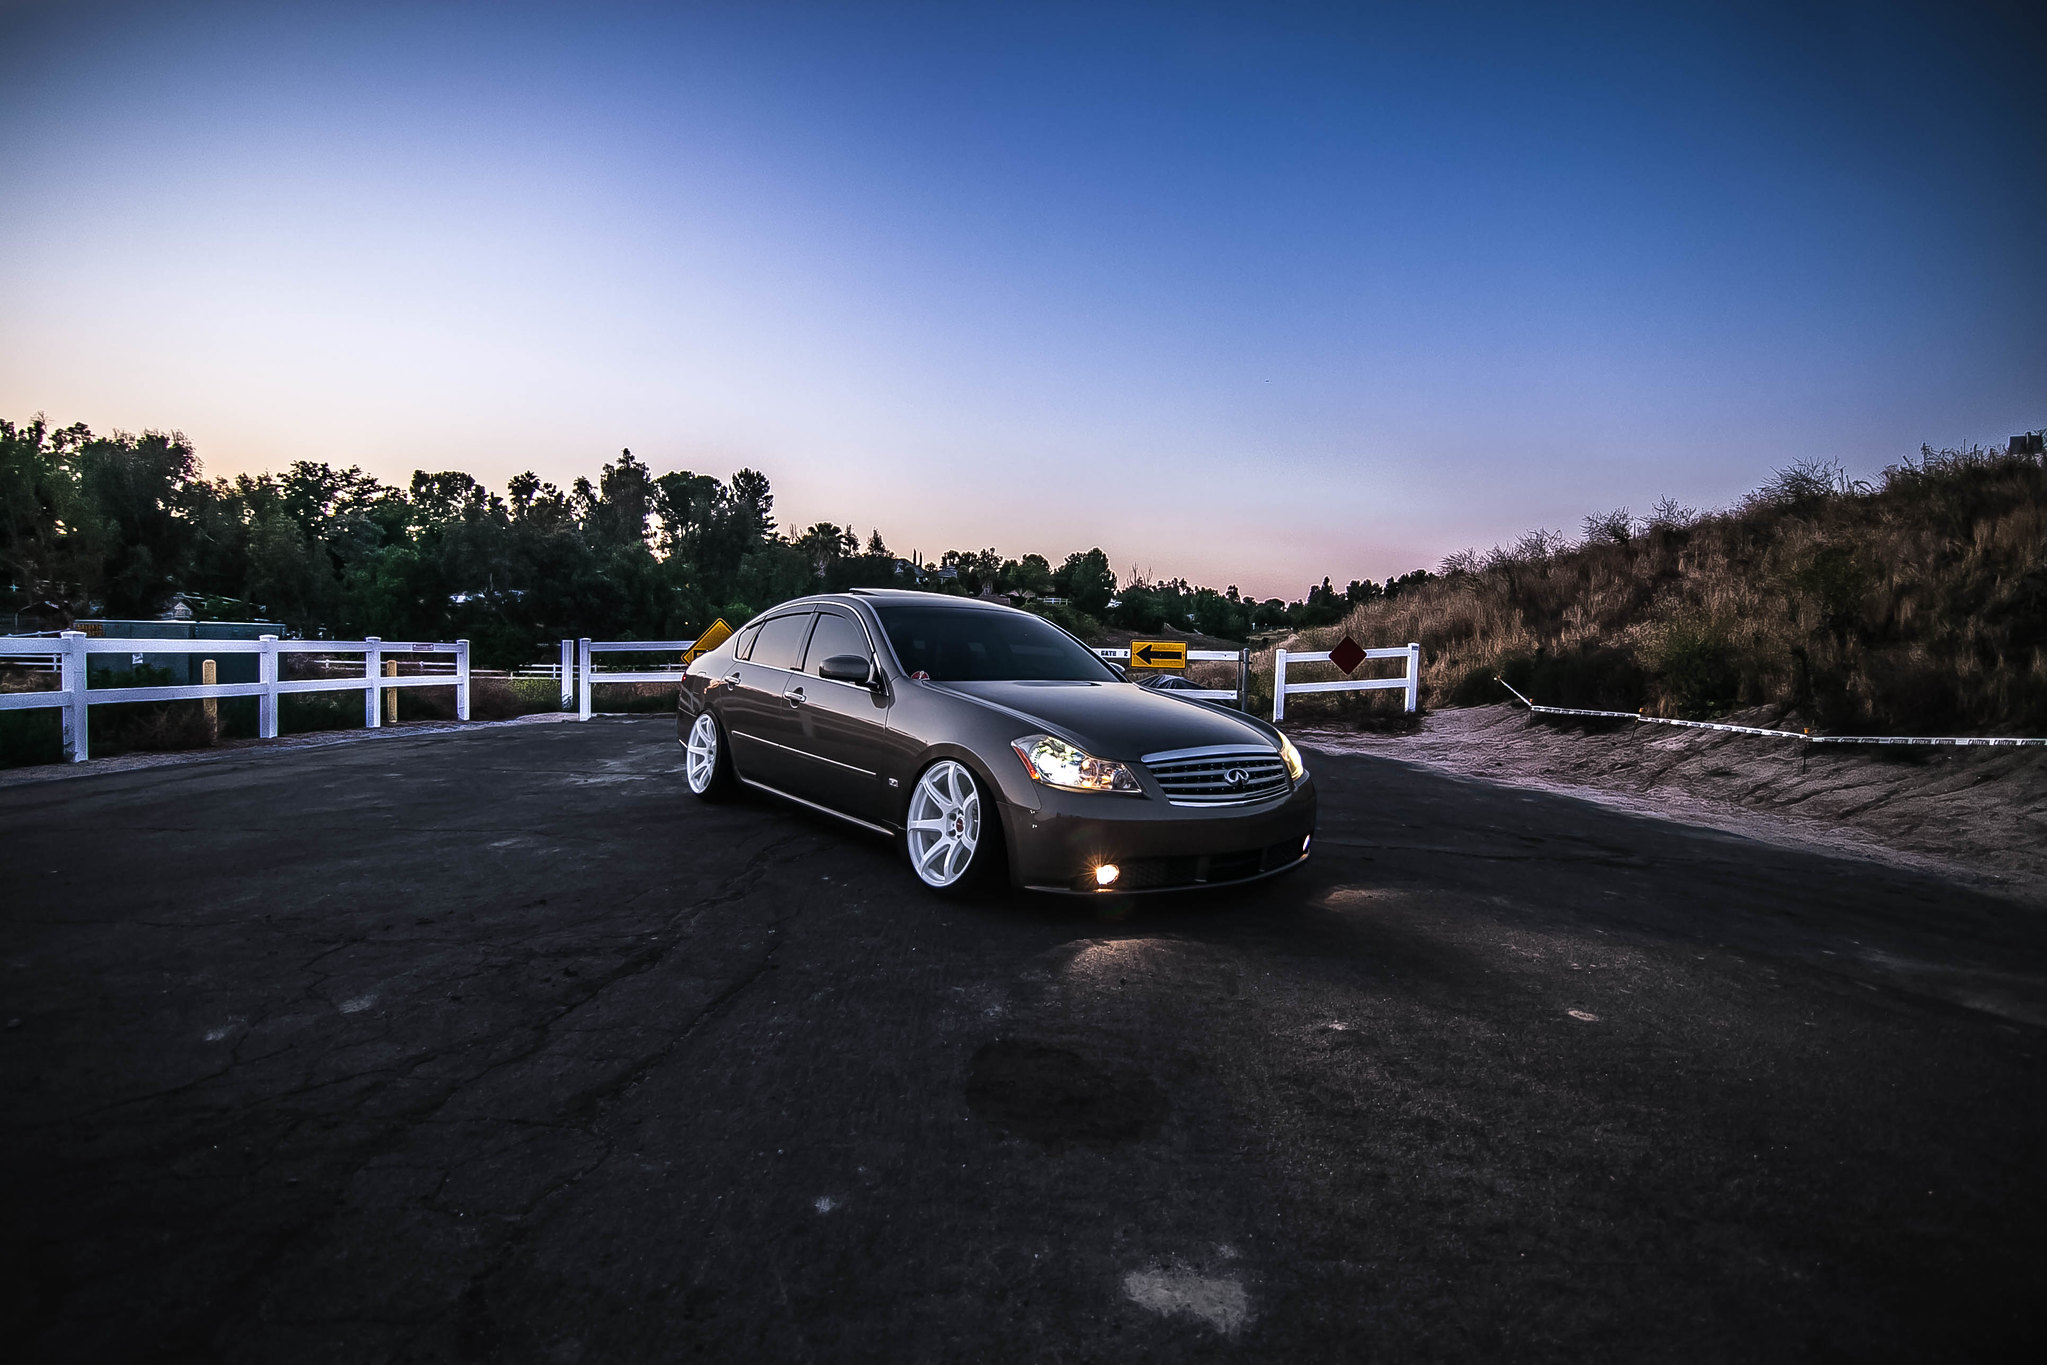 2006 infiniti m45 static so cal nissan forum nissan forums static m45 by bryan boeldt on flickr vanachro Choice Image